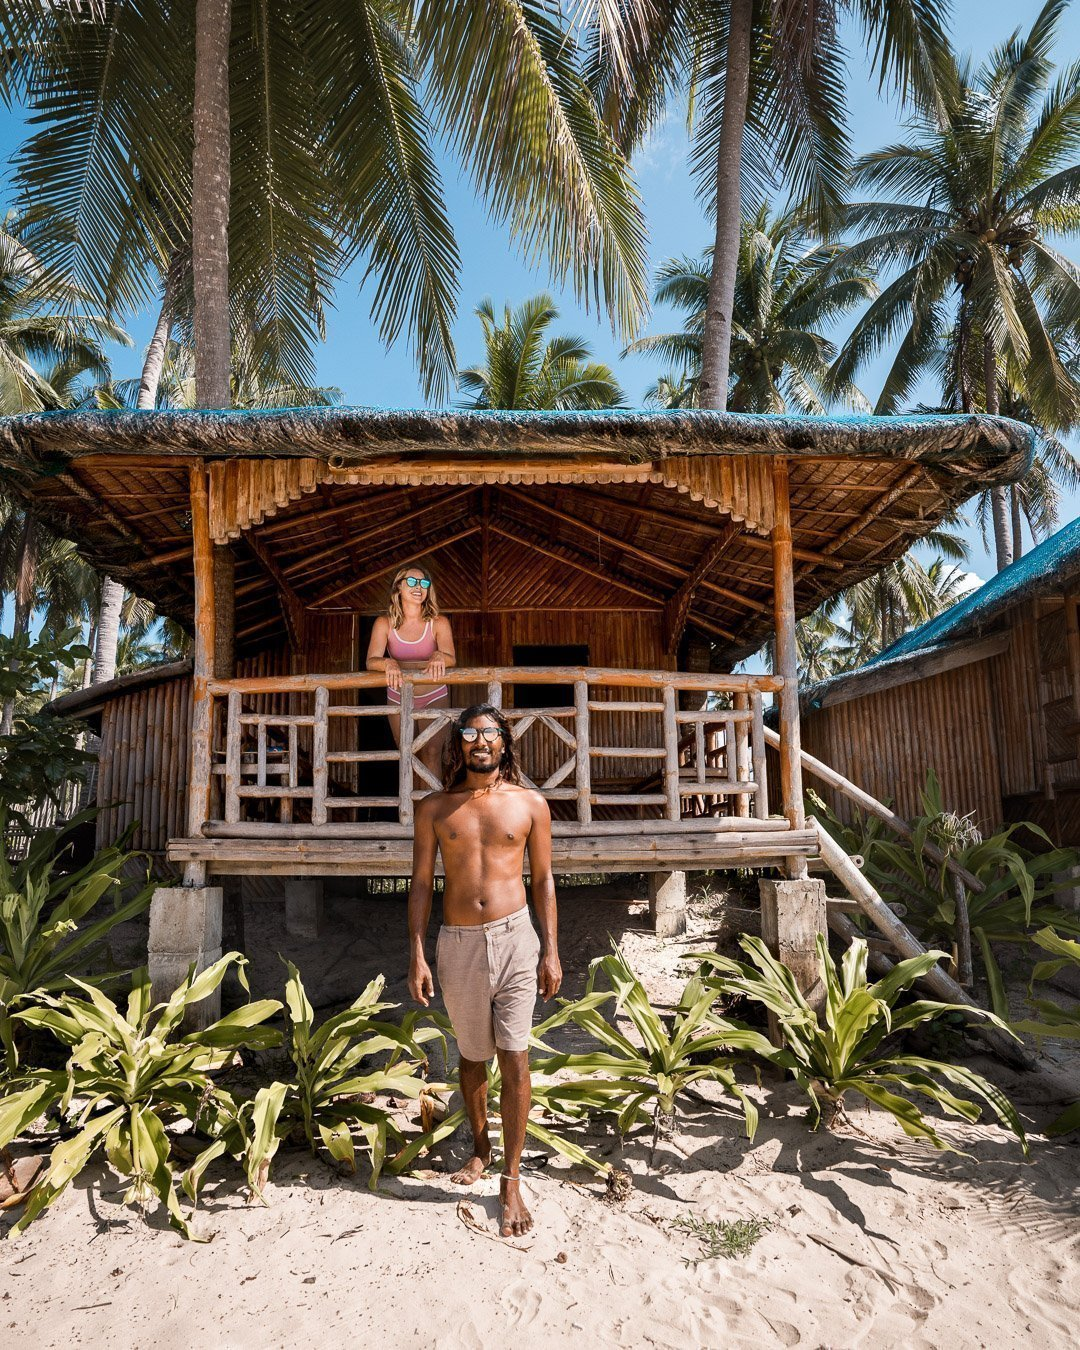 Guy and girl hanging out in a hut on Nacpan Beach in the Philippines